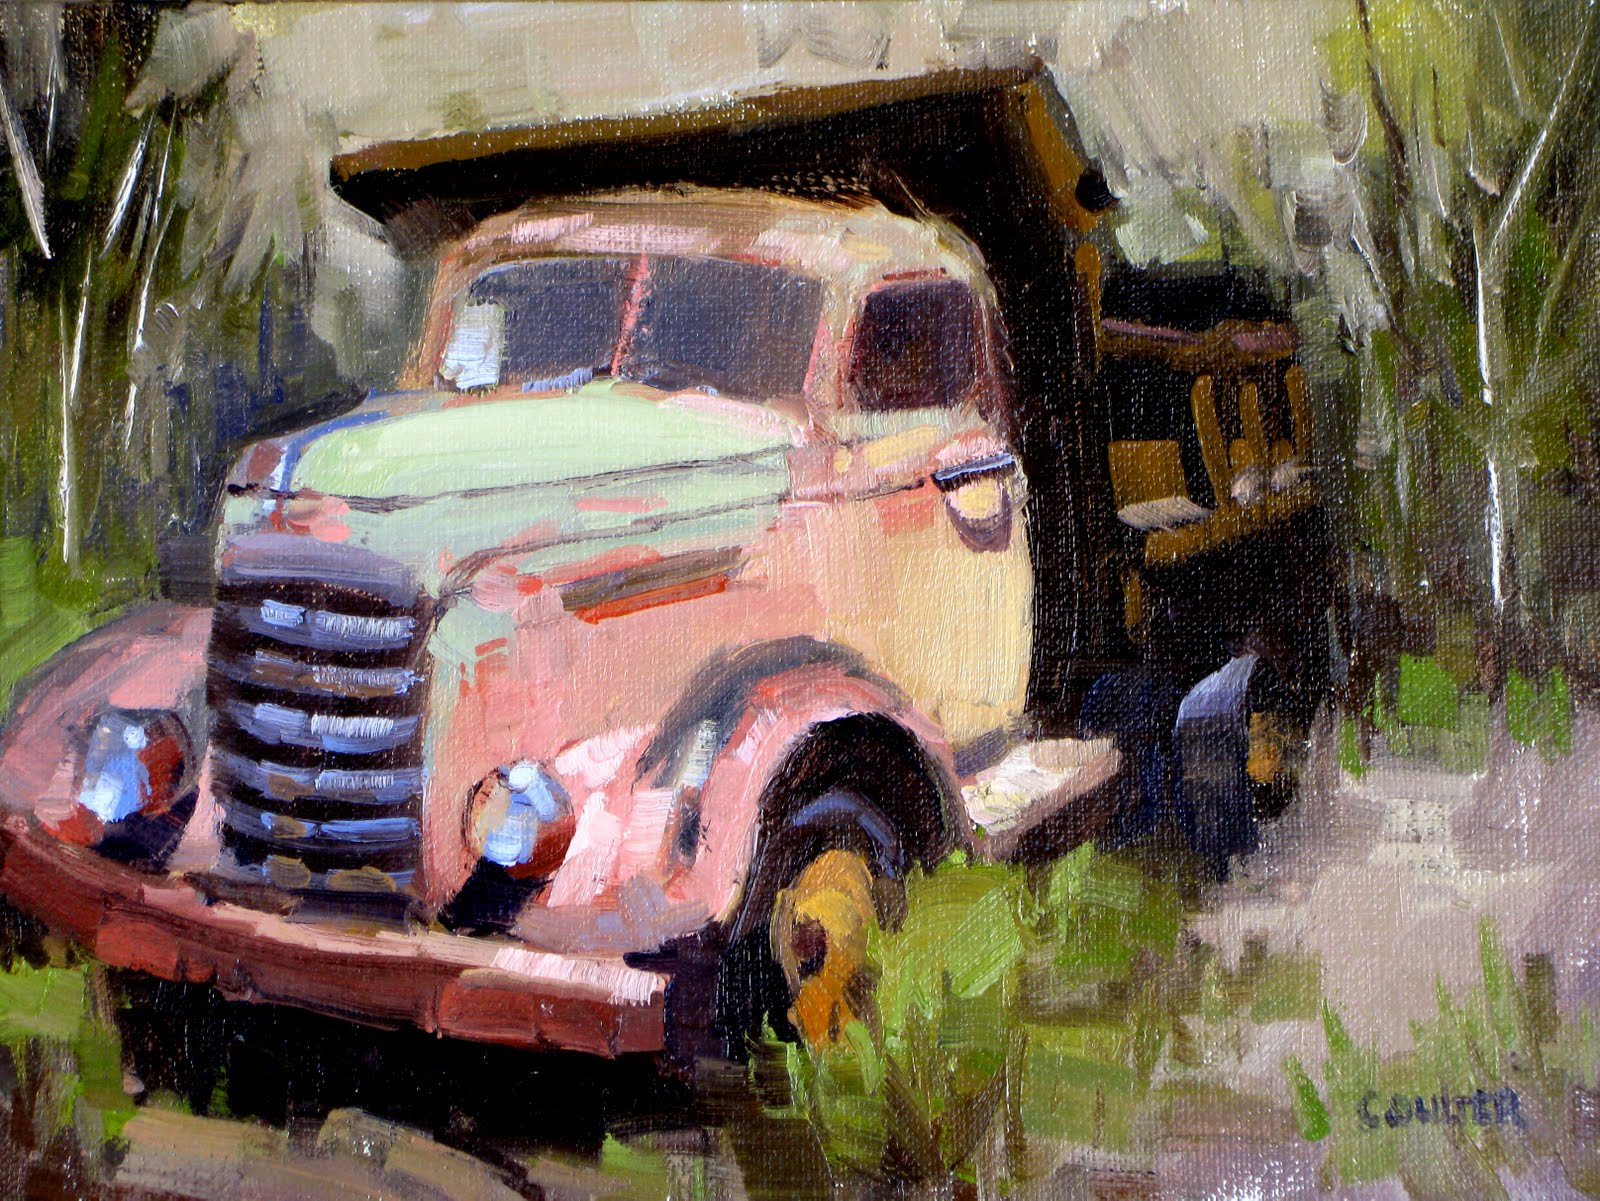 """PINK DUMP TRUCK"" original fine art by James Coulter"